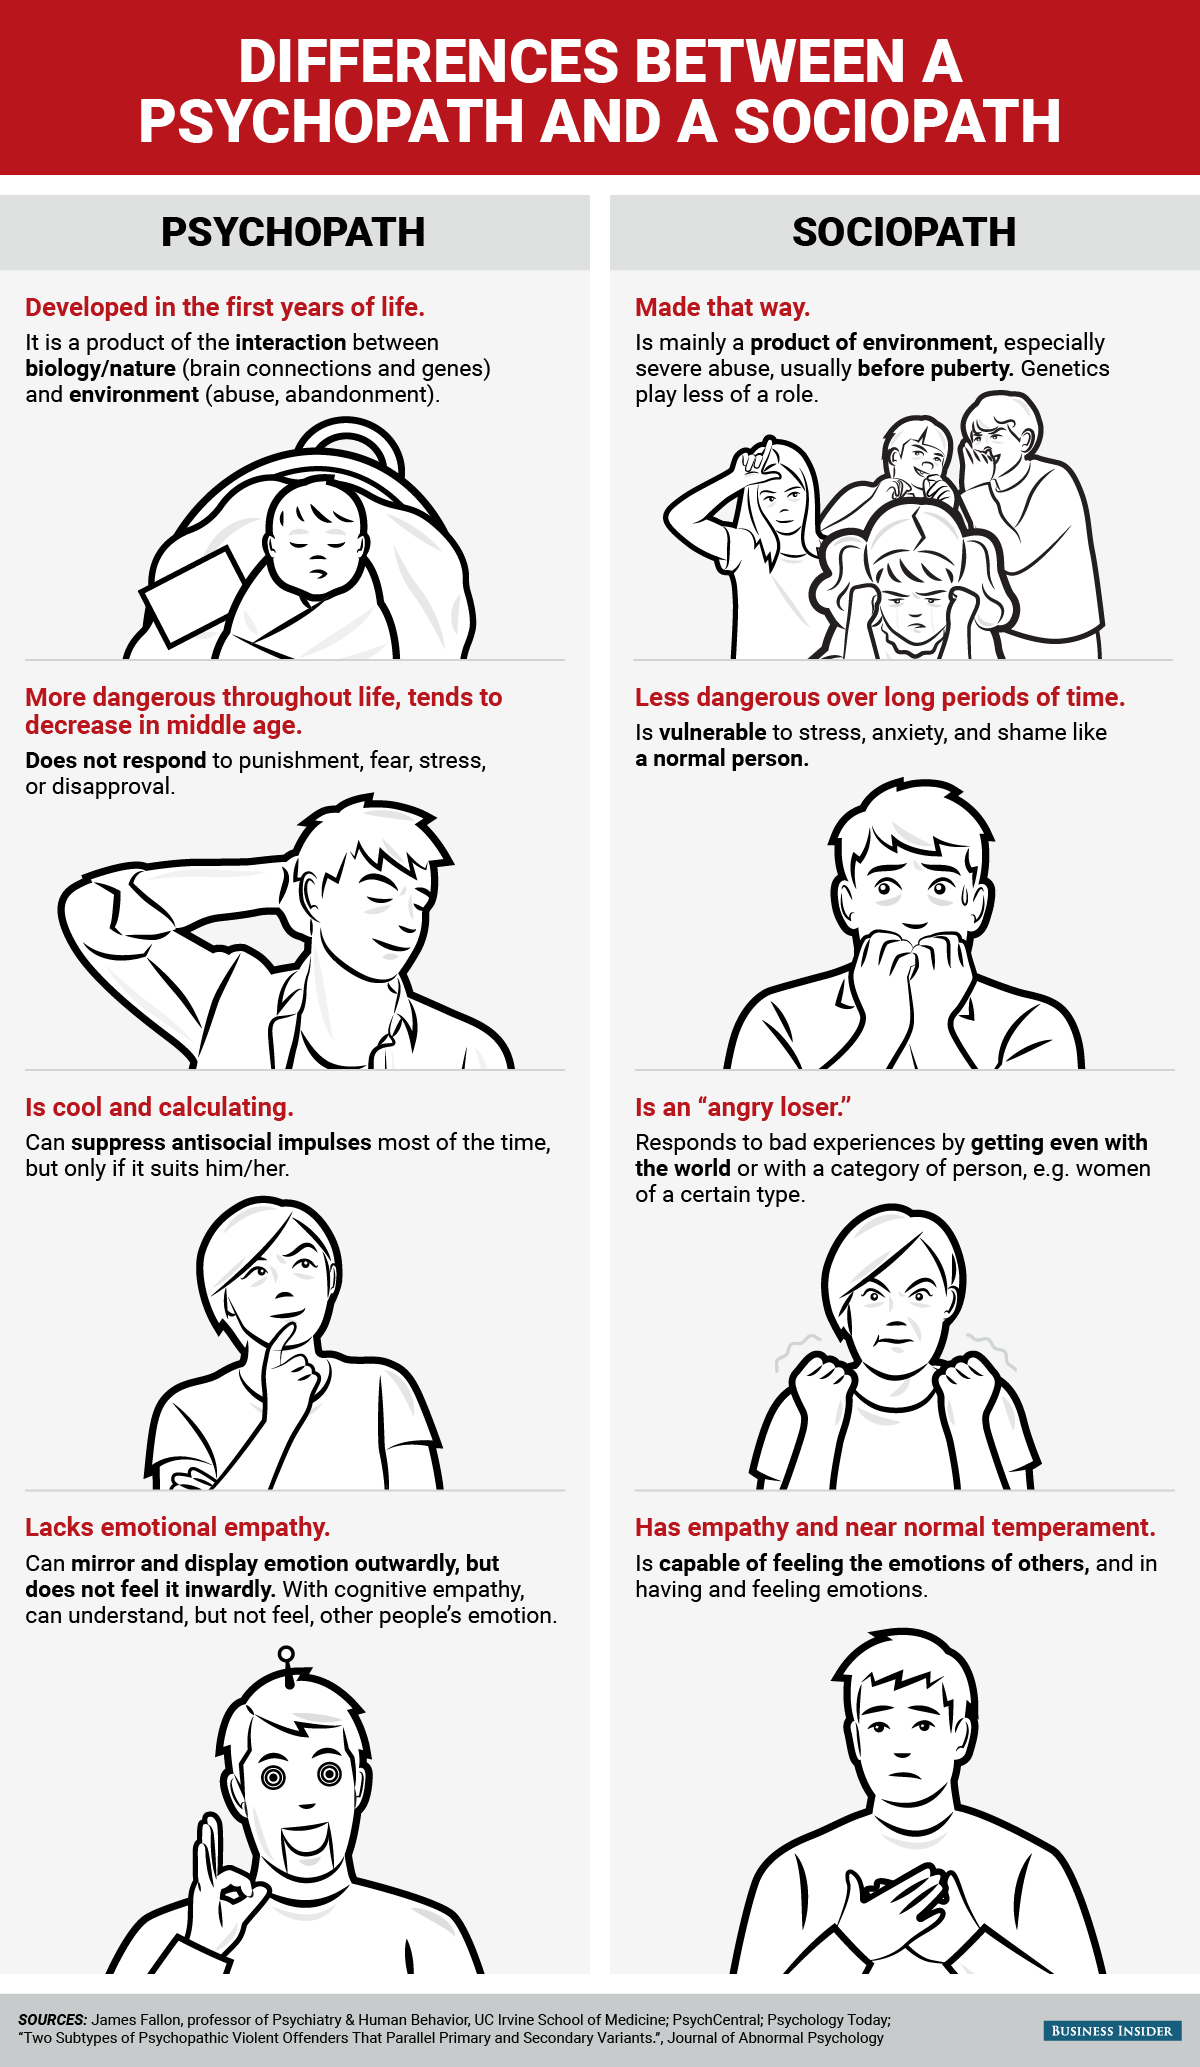 bi_graphics_differences between a psychopath and a